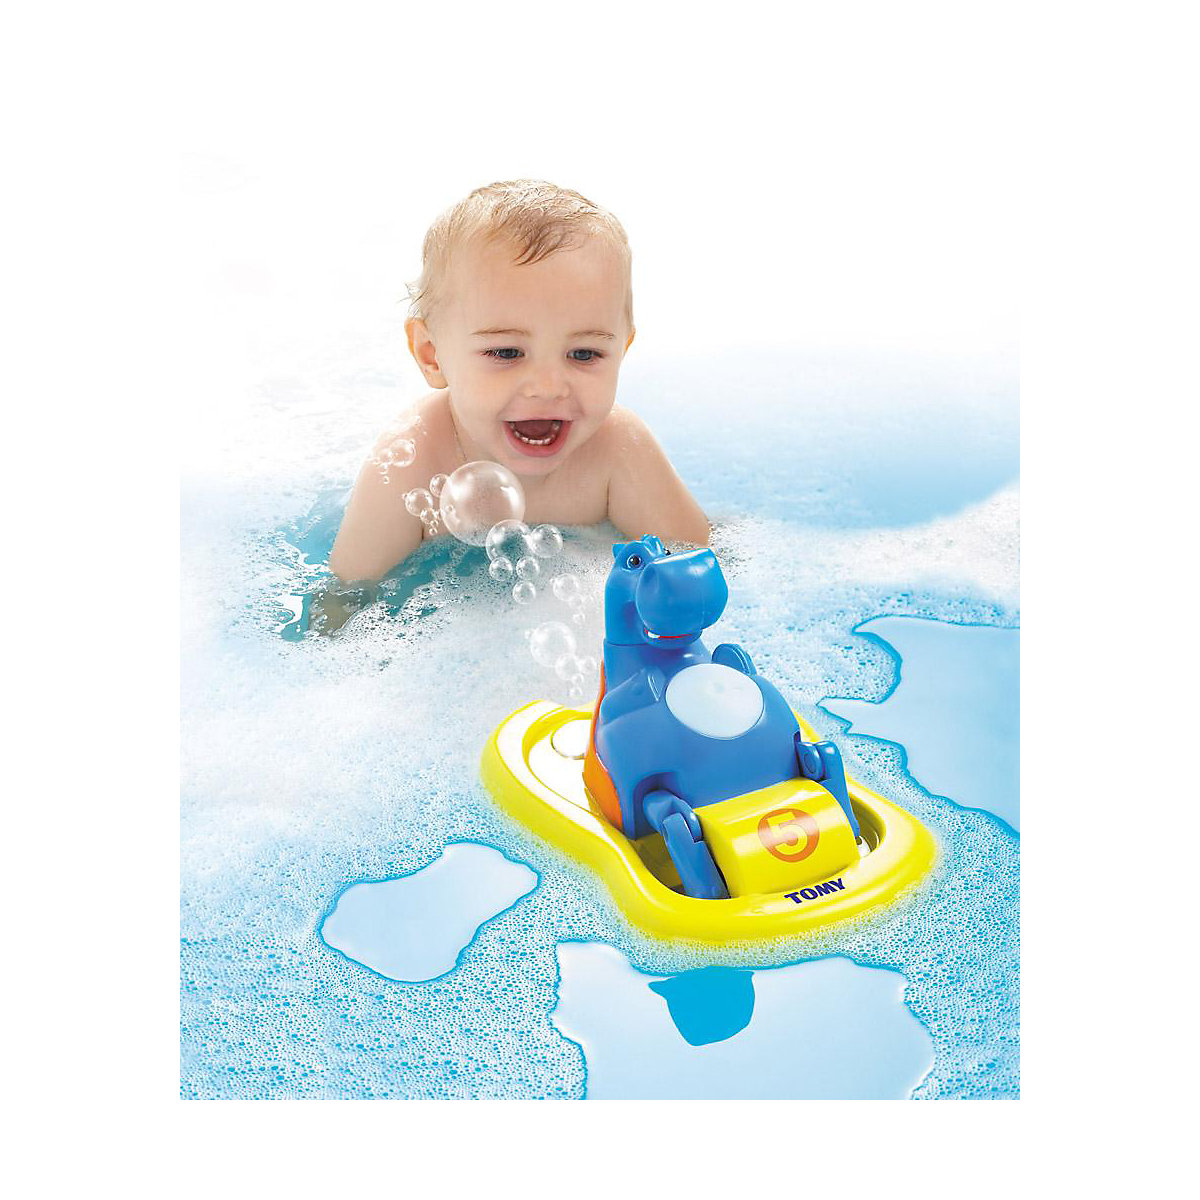 Bath Toy TOMY 1602936 Bathing Bath toys for bathroom on suckers Rubber Duck Doll Kids bath toy tomy 4599020 bathing bath toys for bathroom on suckers rubber duck doll kids